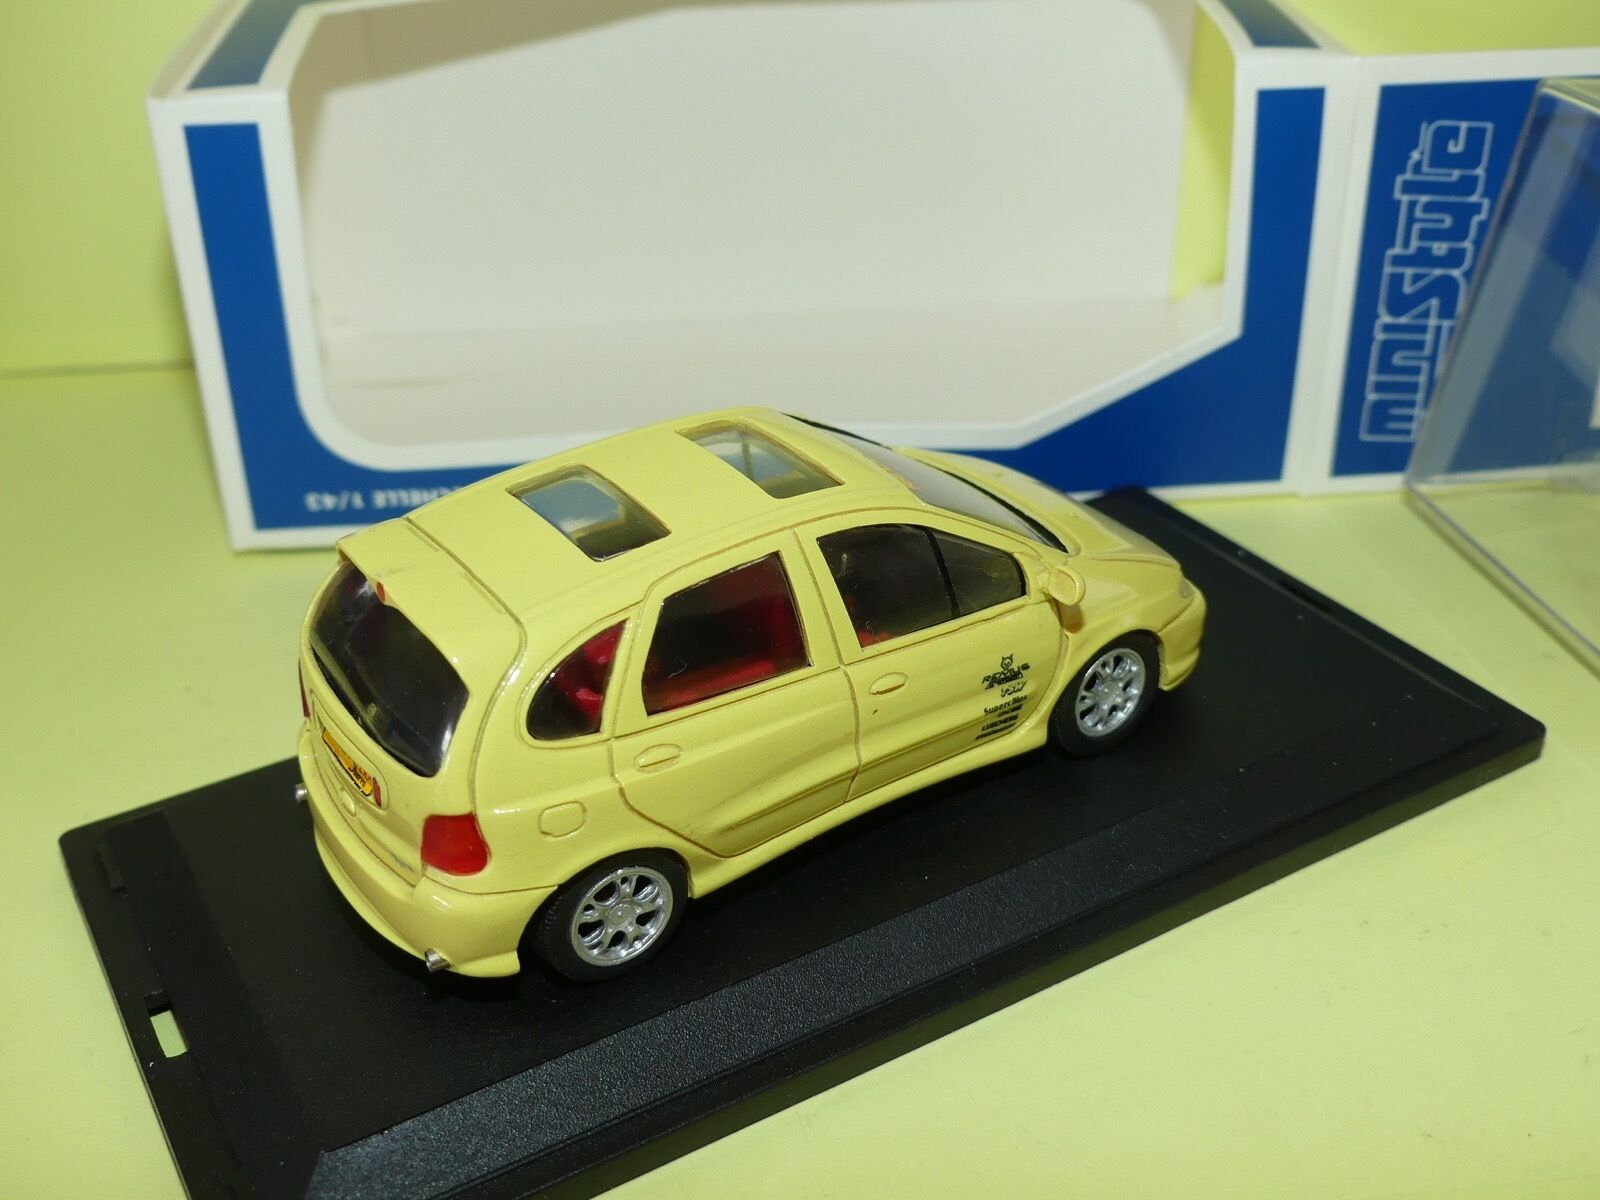 RENAULT SCENIC SBARRO CESAM MINISTYLE 1 43 43 43 1a93af